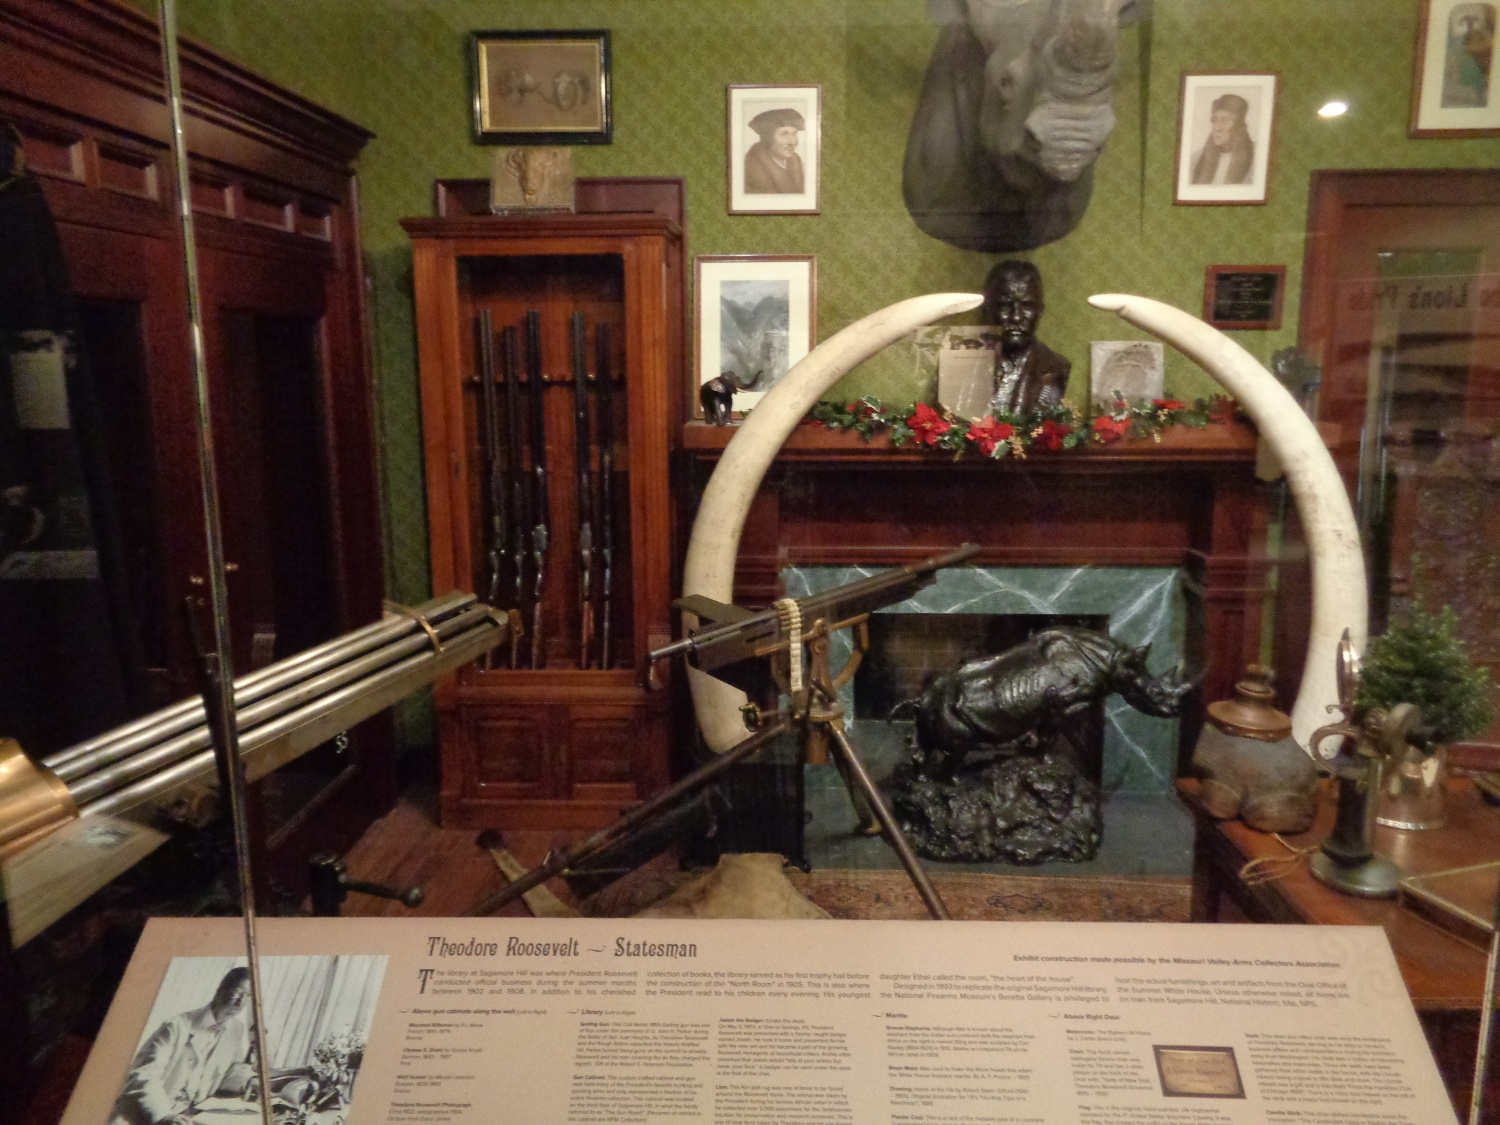 Teddy roosevelt guns to be displayed at nra national - Dsc00192 Dsc00194 Dsc00195